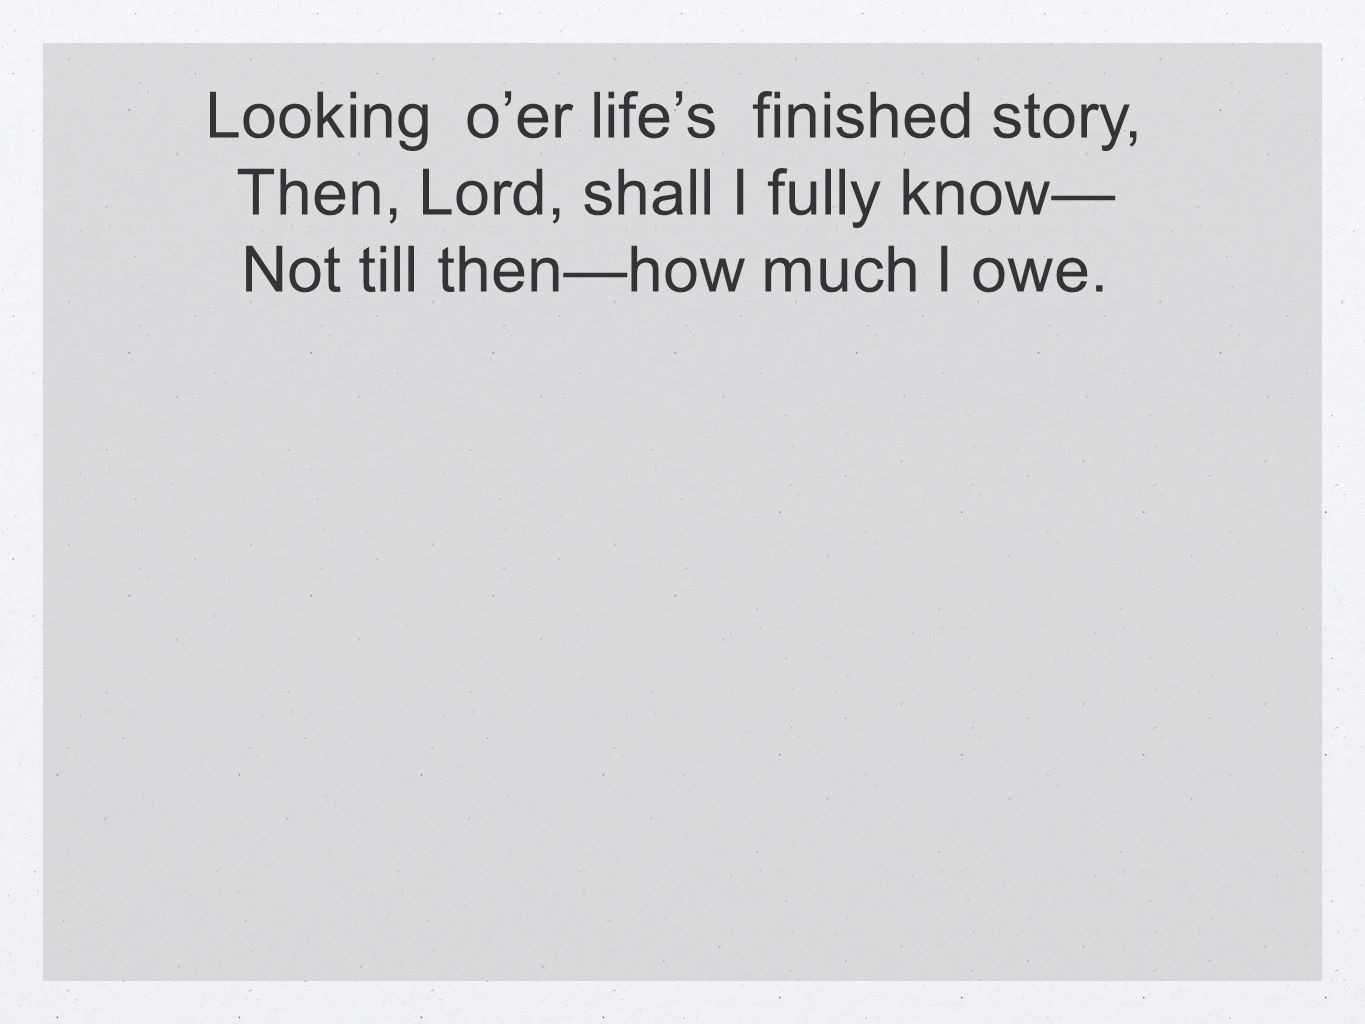 Looking oer lifes finished story, Then, Lord, shall I fully know Not till thenhow much I owe.